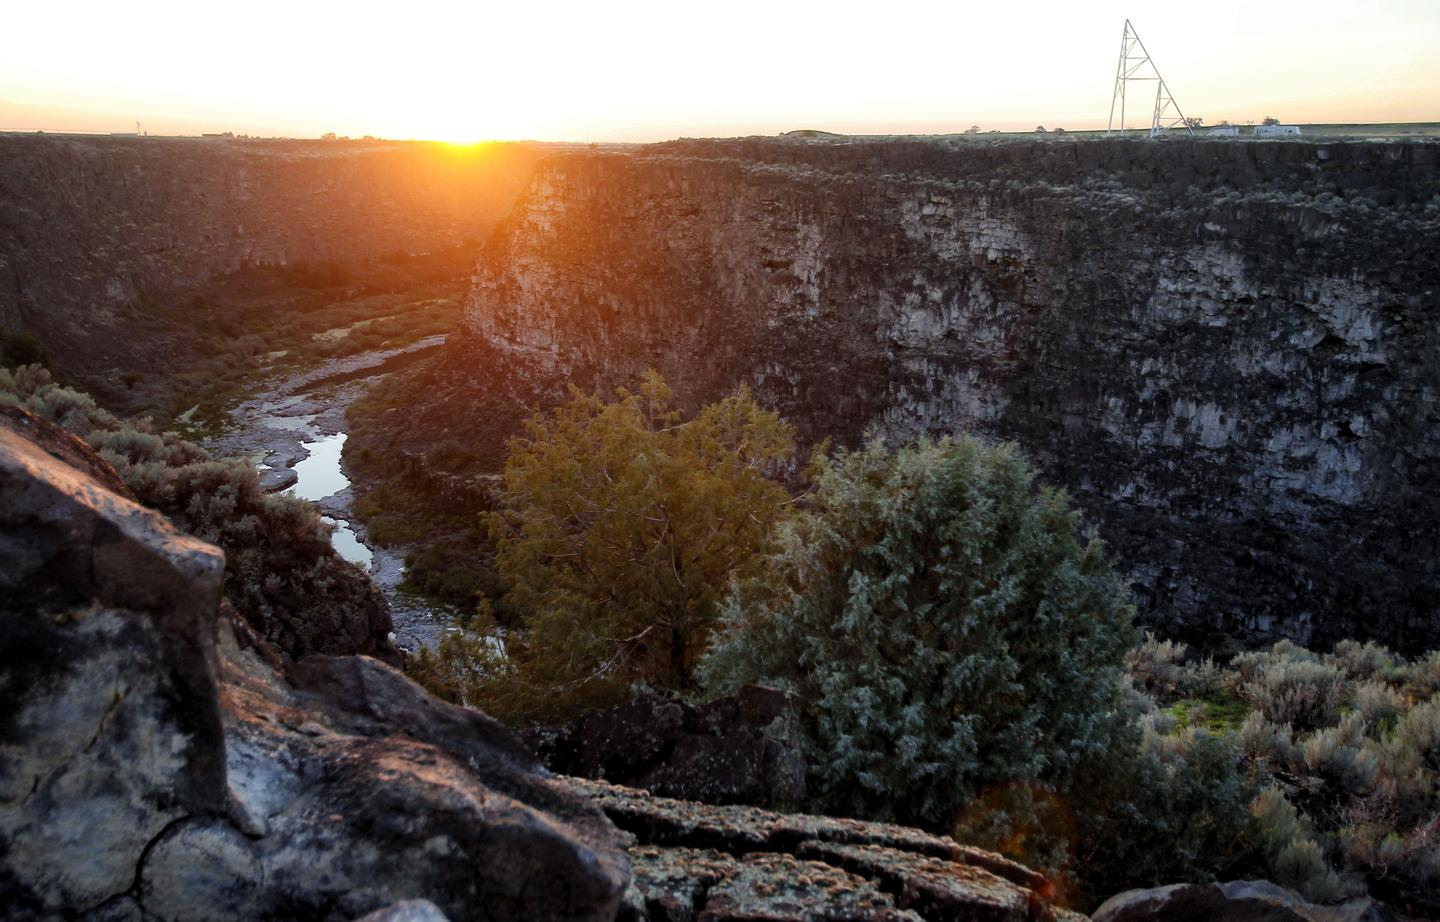 Snake River Canyon: not a small jump